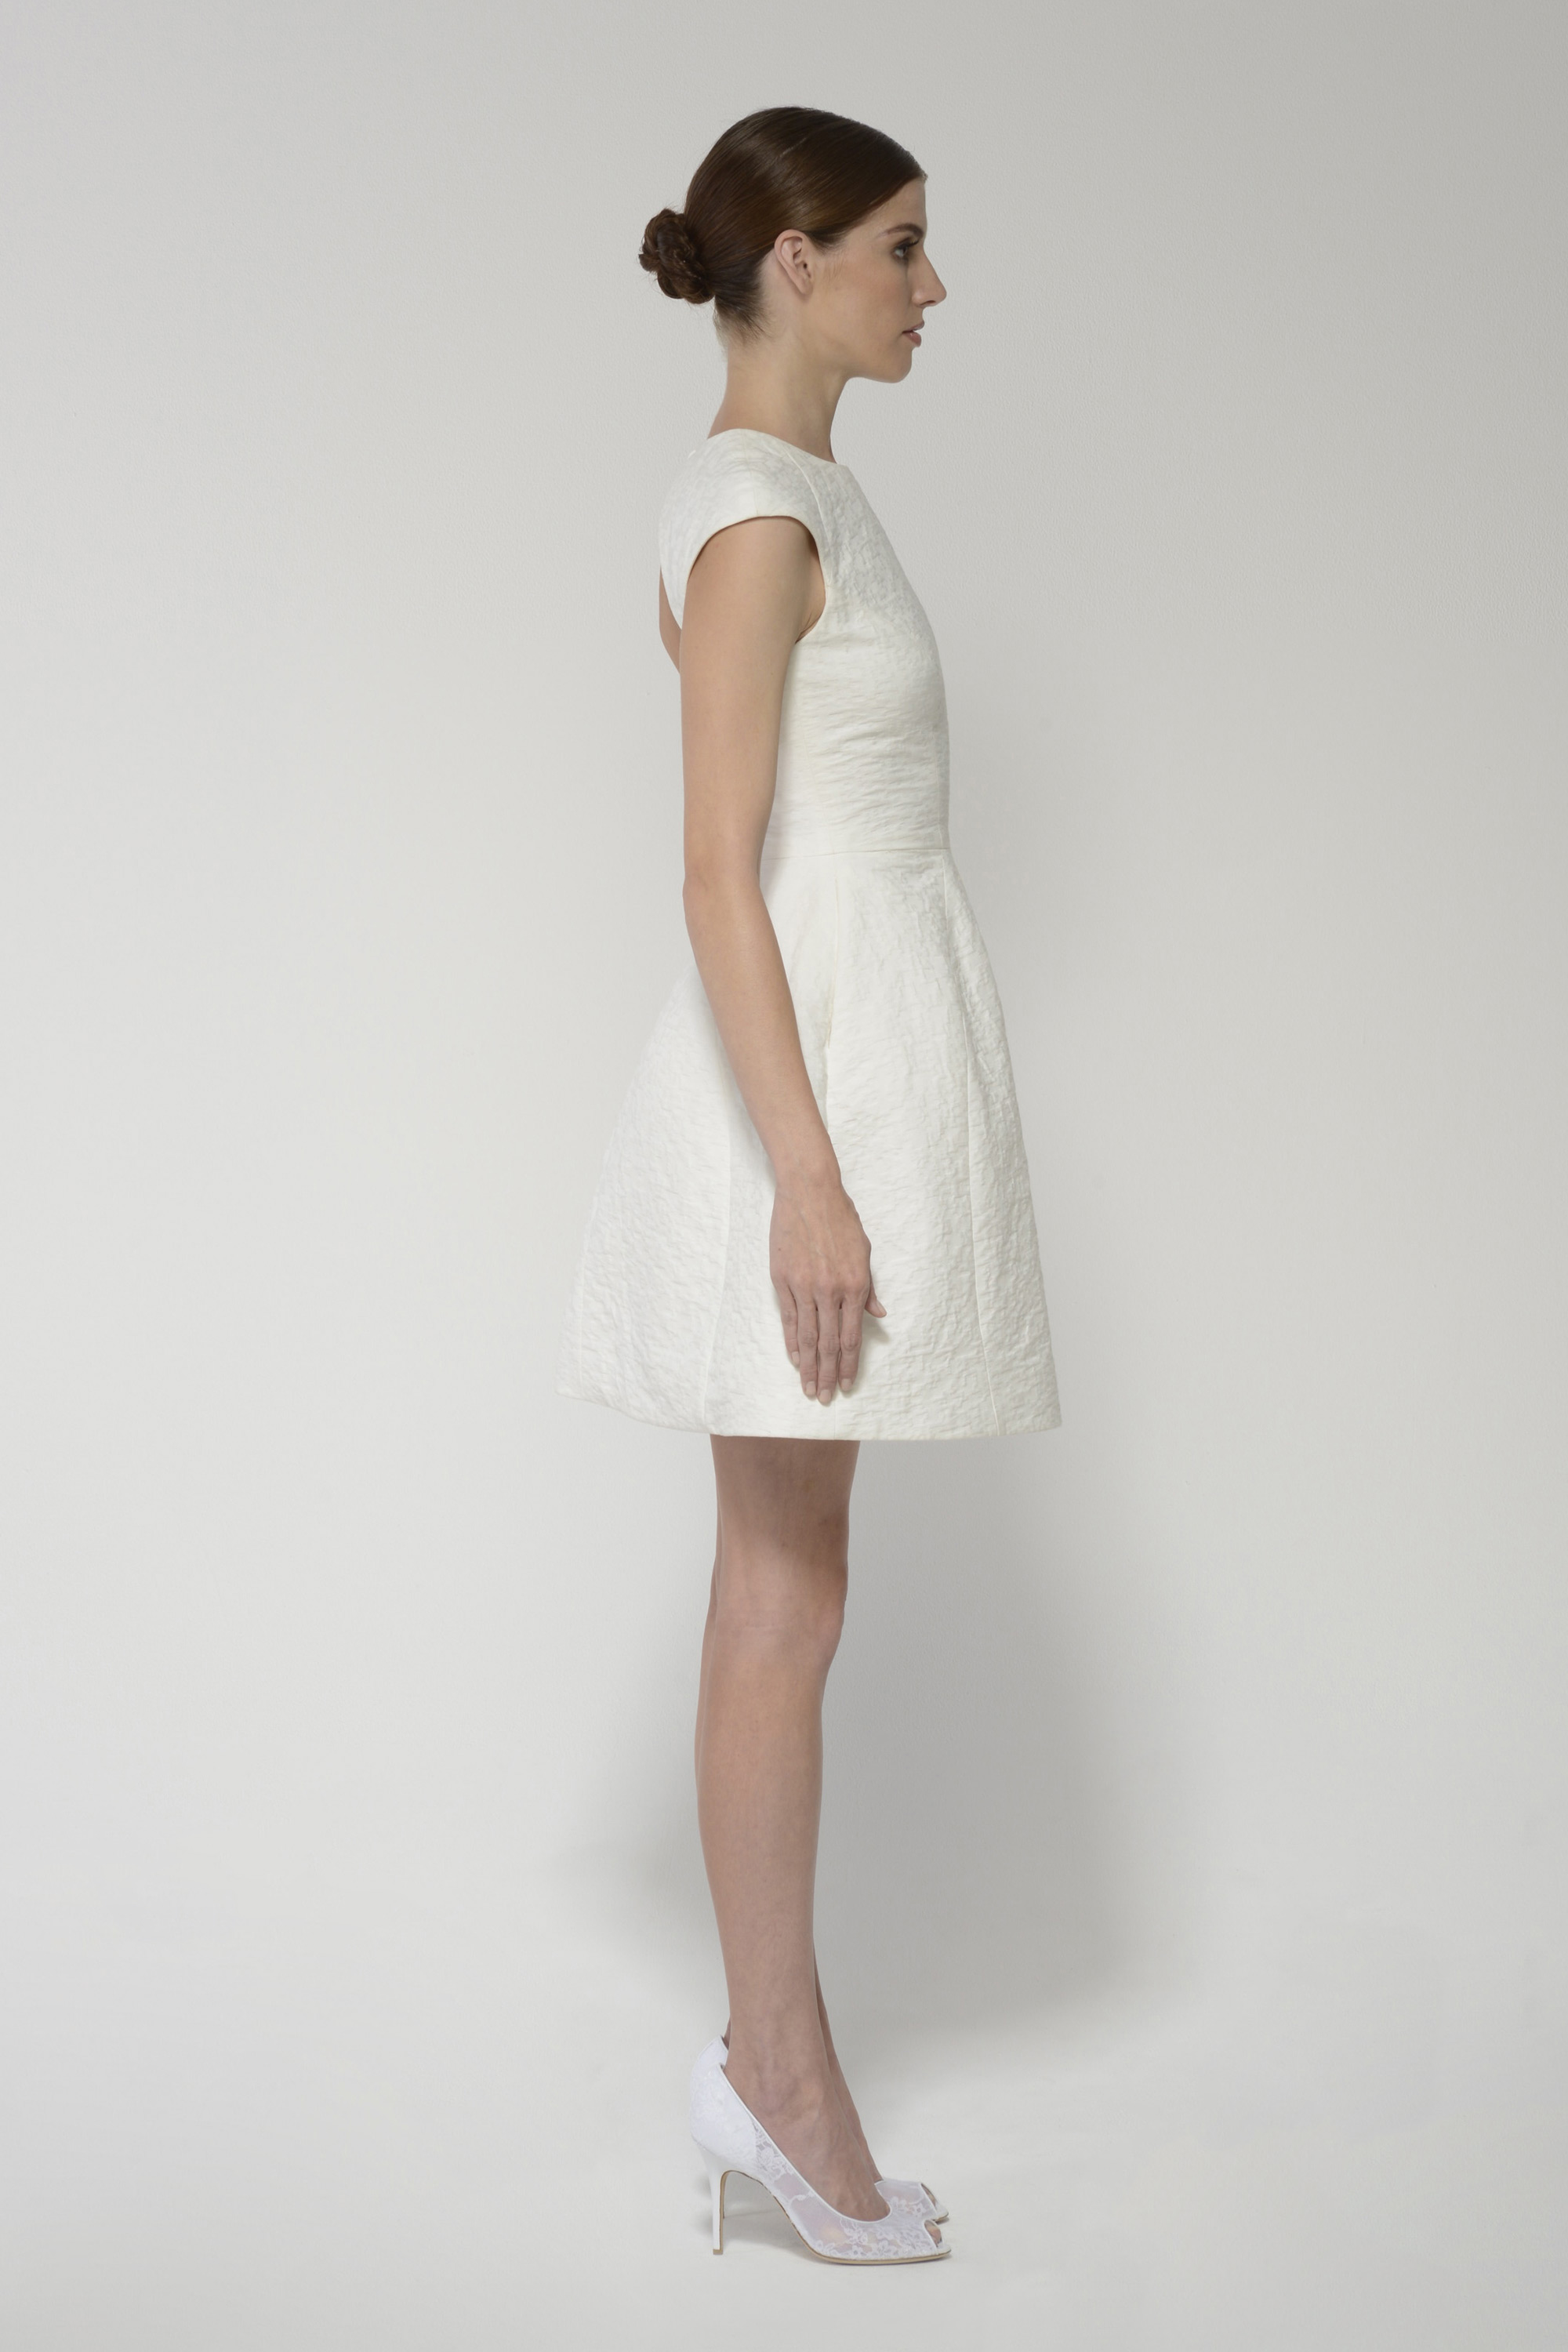 Deedress ivory left 1